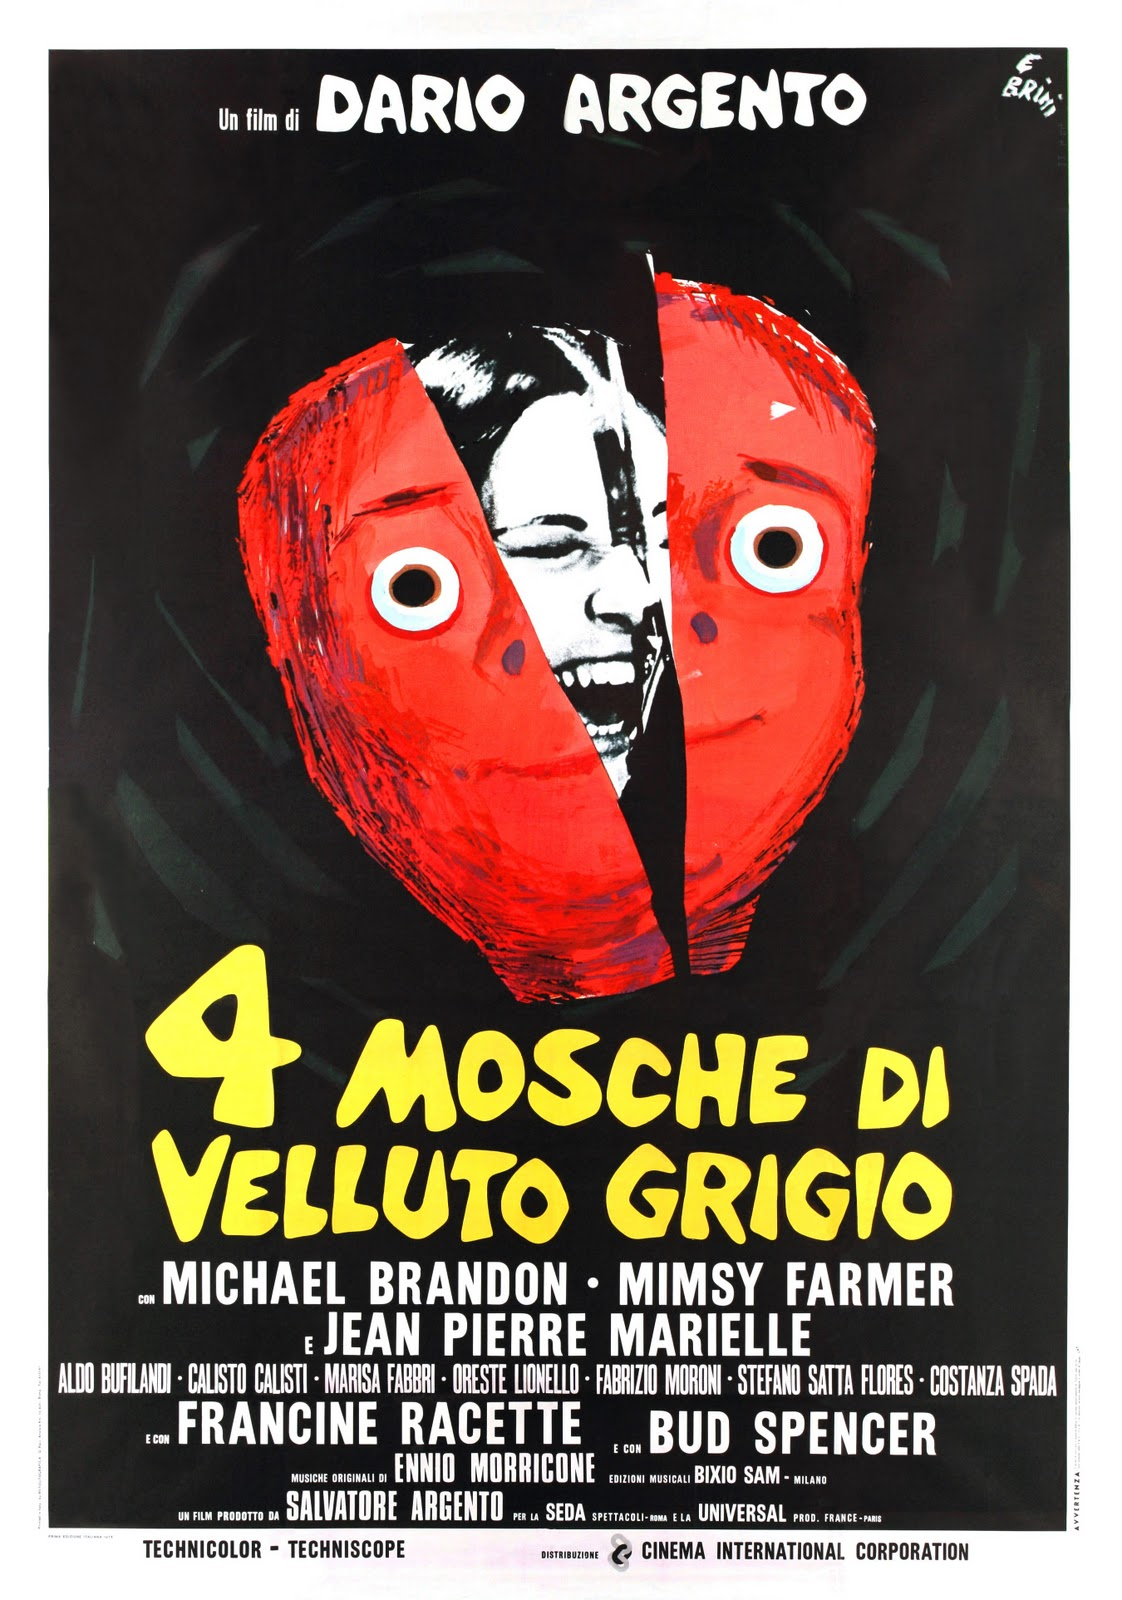 31 Days of Horror: The posters of Dario Argento | deep ...